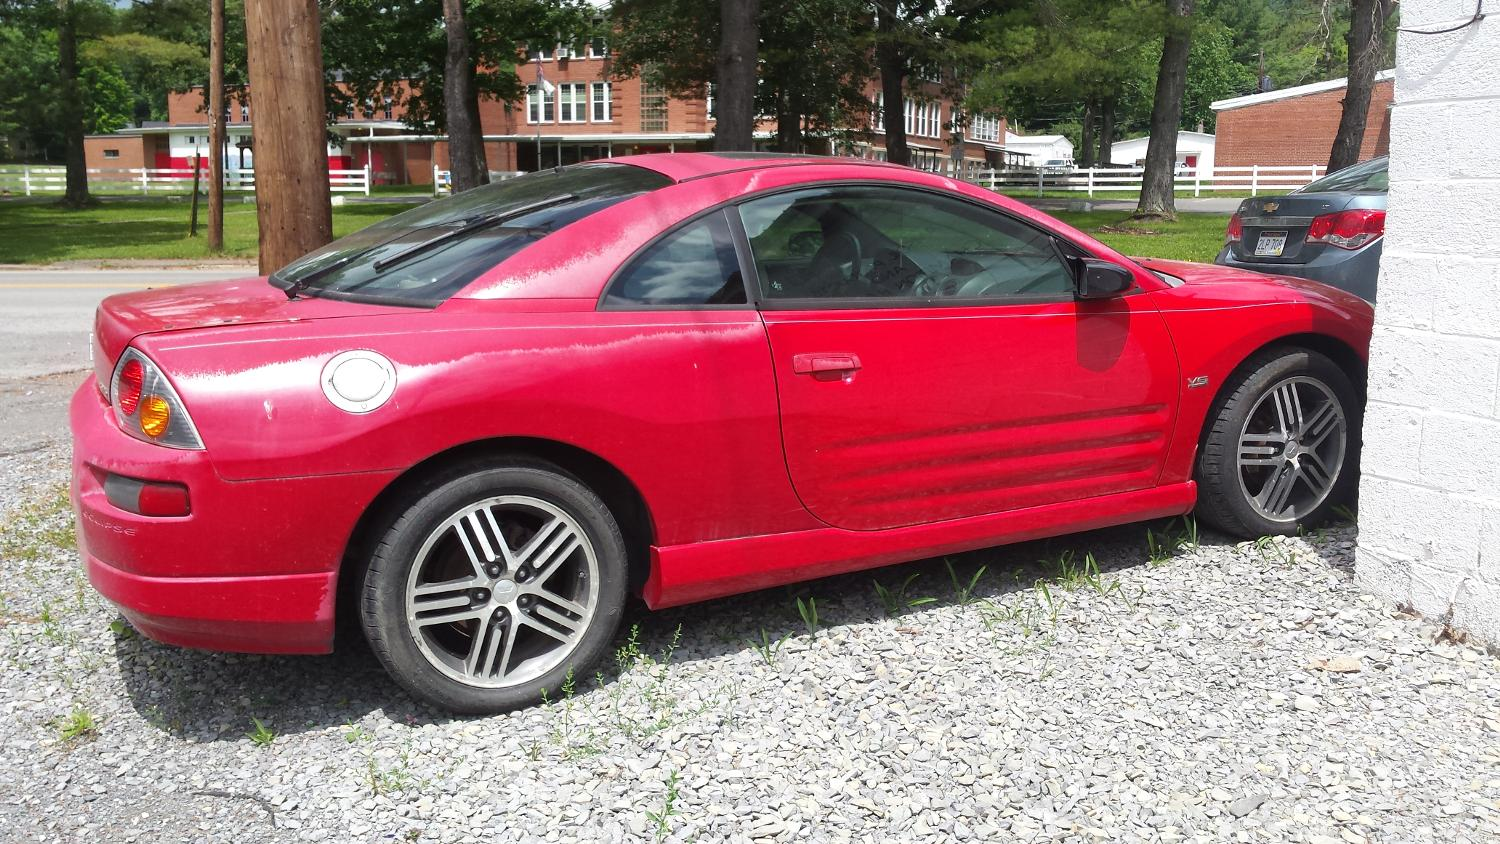 Best 2003 Mitsubishi Eclipse Gts For In Lewisburg West Virginia 2019